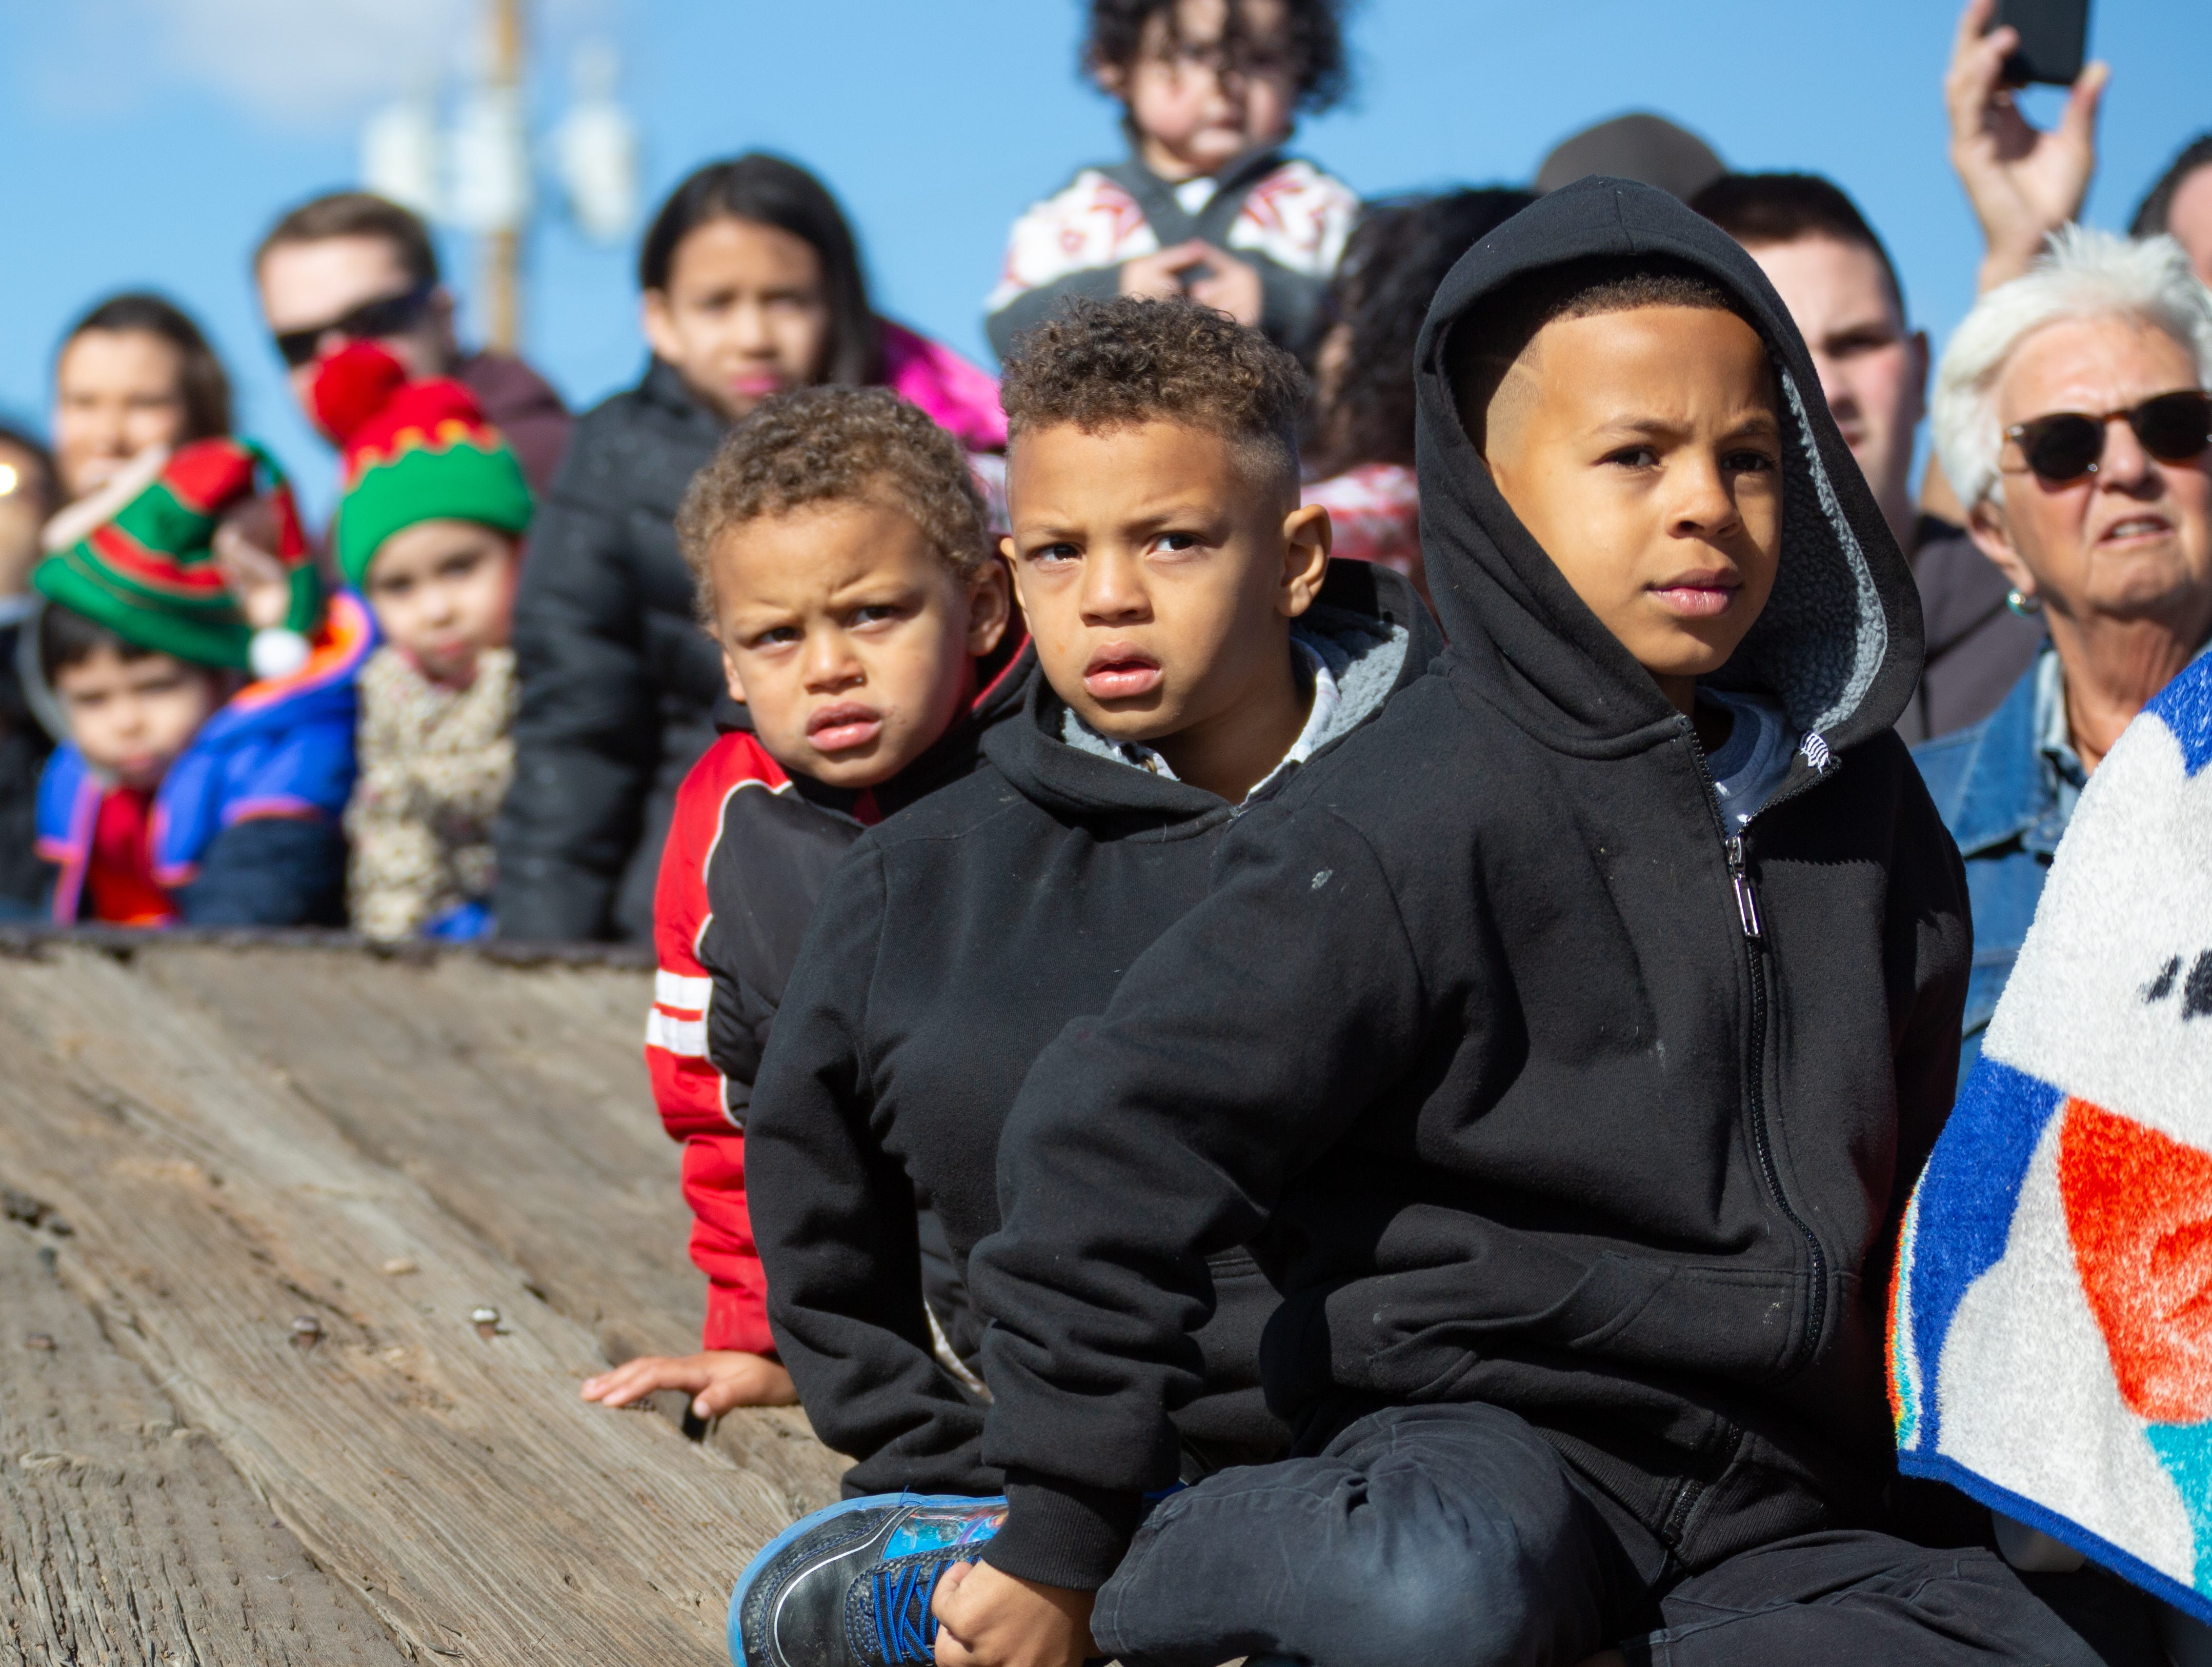 Deandre Harris, 7, right, and is brothers Makhai, 6, center, and Jamayes,3, left, watch for Santa to arrive by train on Saturday, Dec. 1, 2018 during the Railroad Museum Holiday Open House. During the event children were able to visit with Santa and particiapate in Christmas craft making.